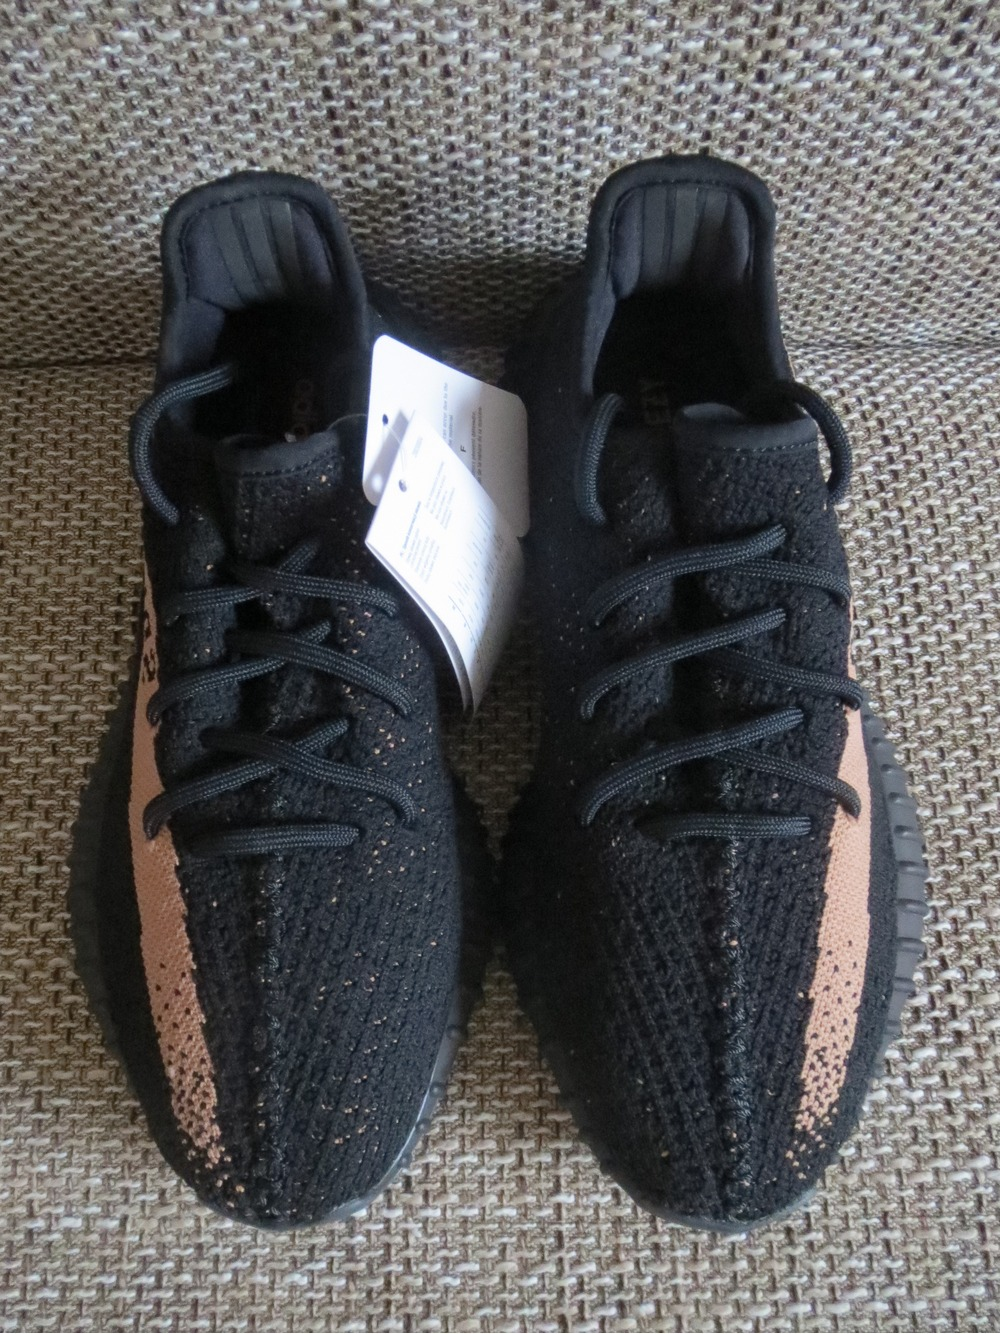 Authentic Adidas Yeezy Boost 350 v2 Core Black Copper